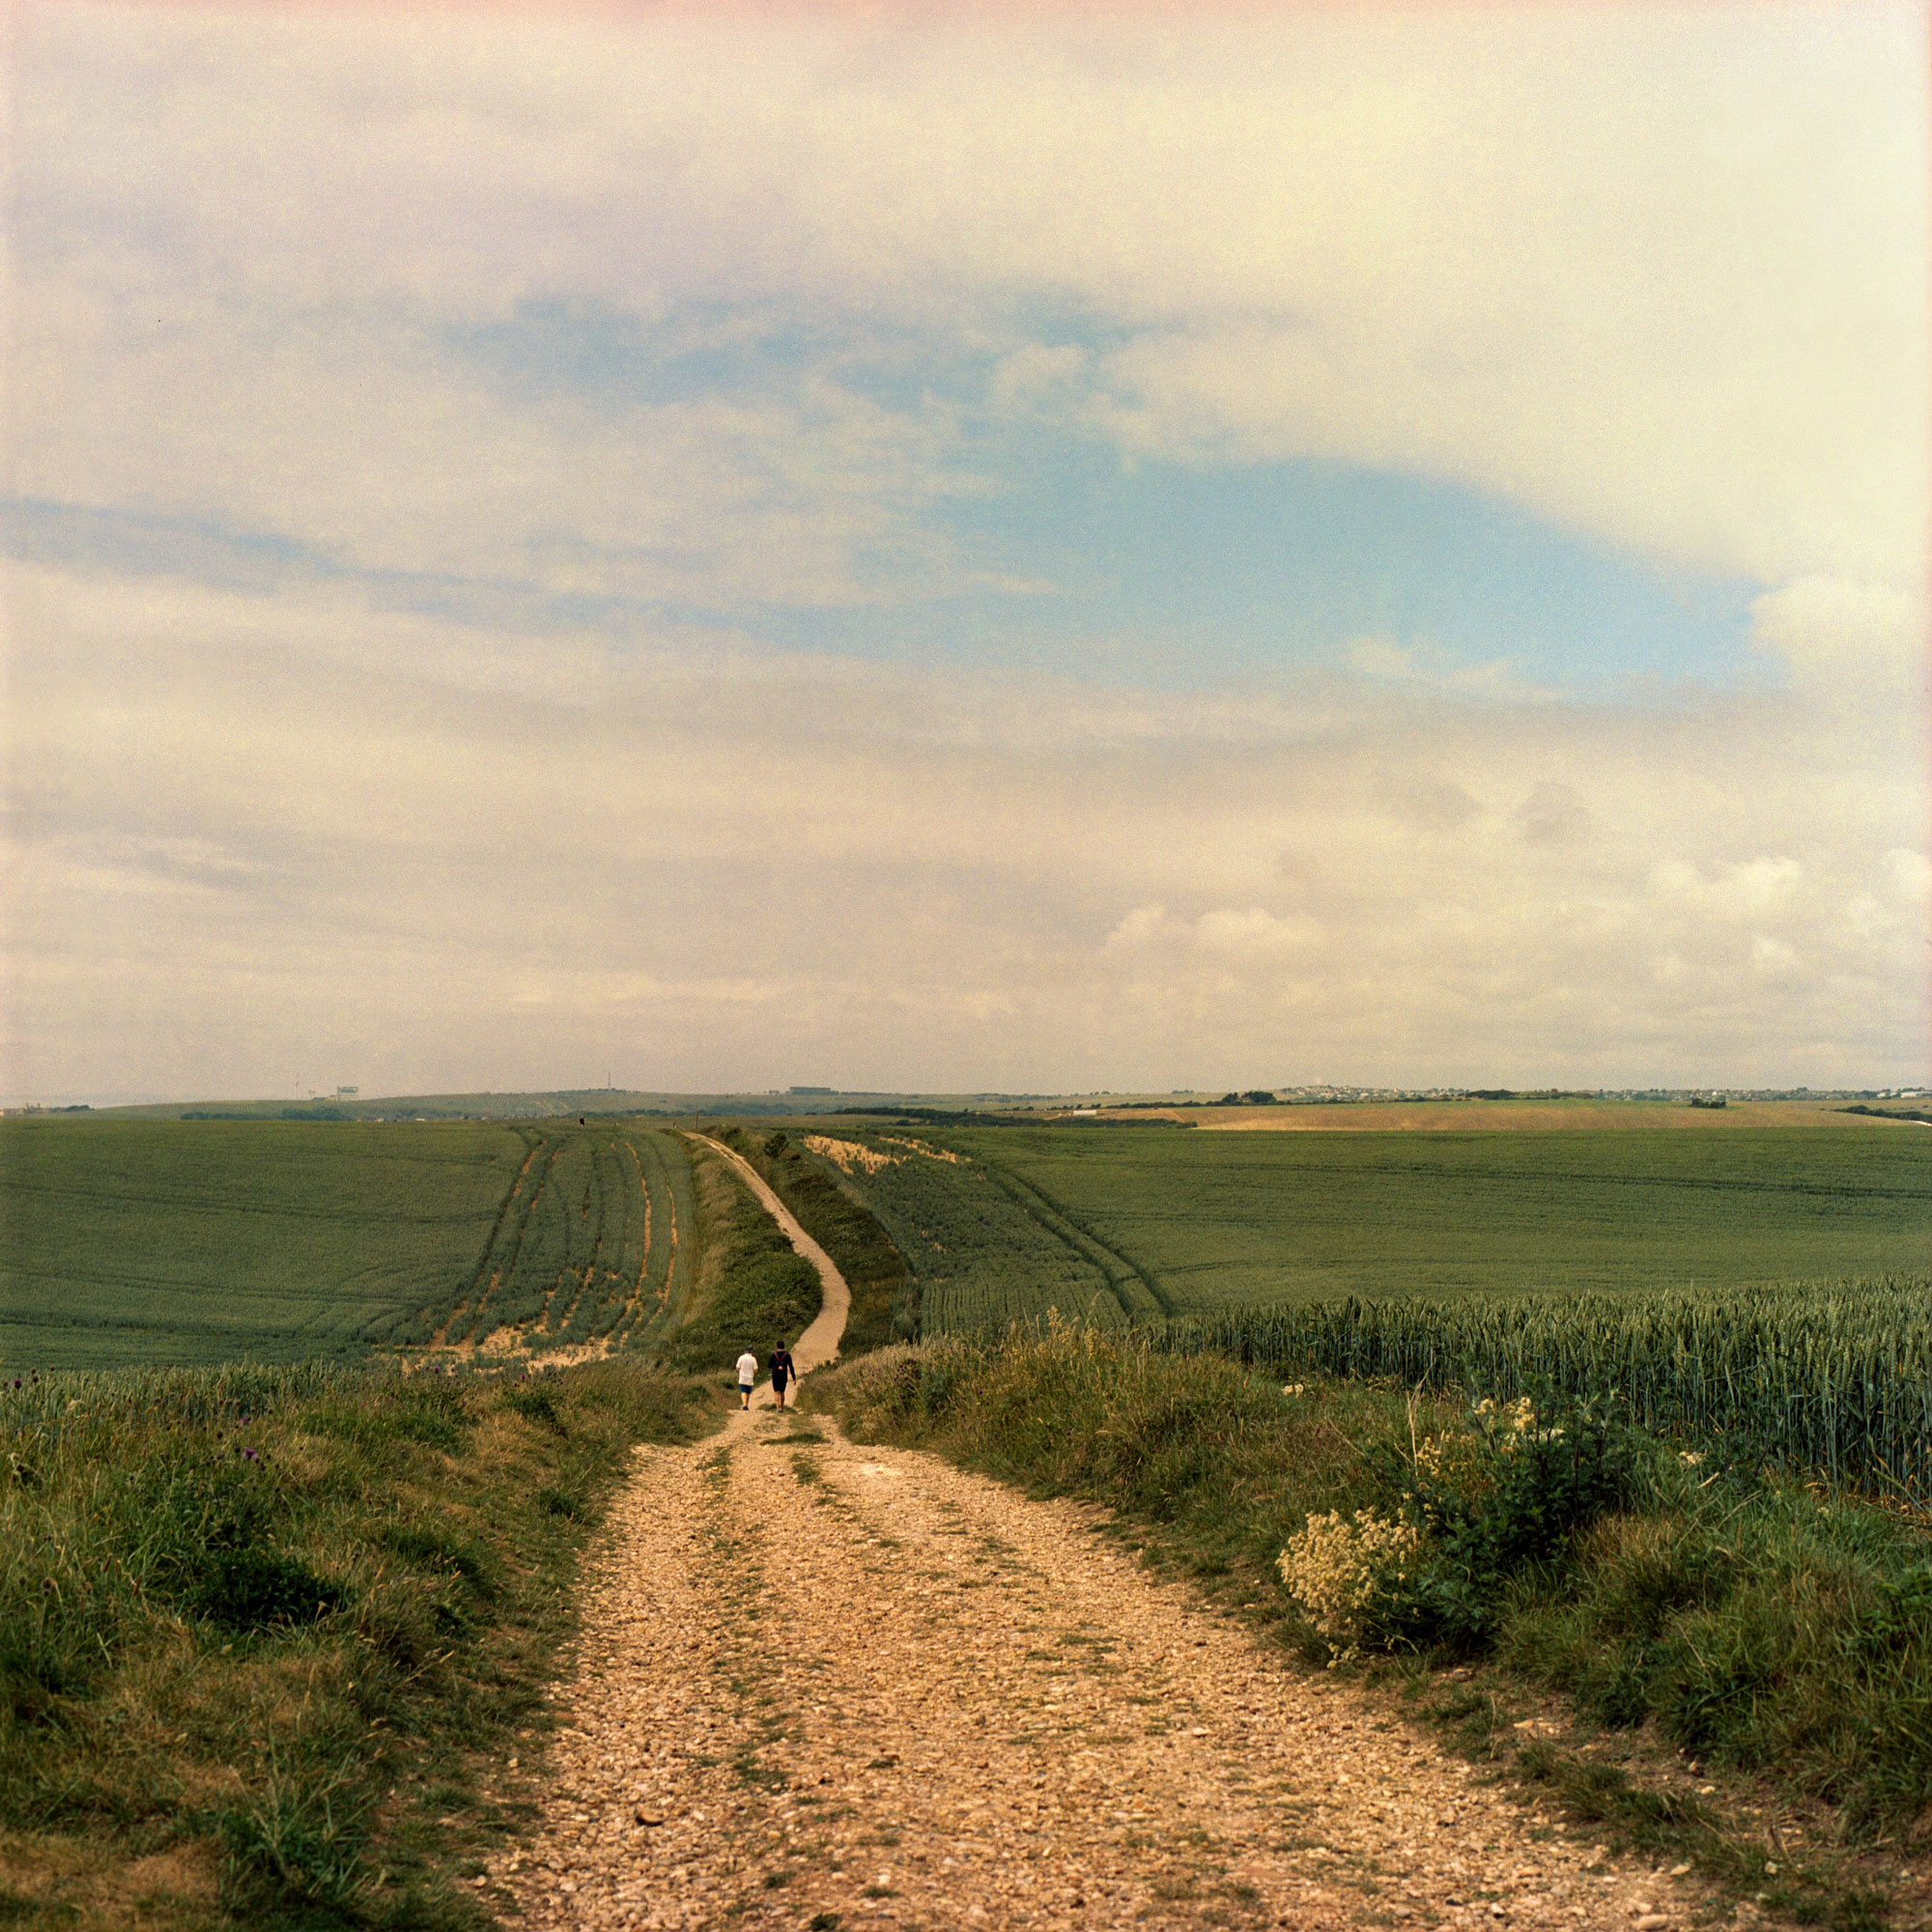 Path over the Tye, South East England, landscape on film by ioannis koussertari